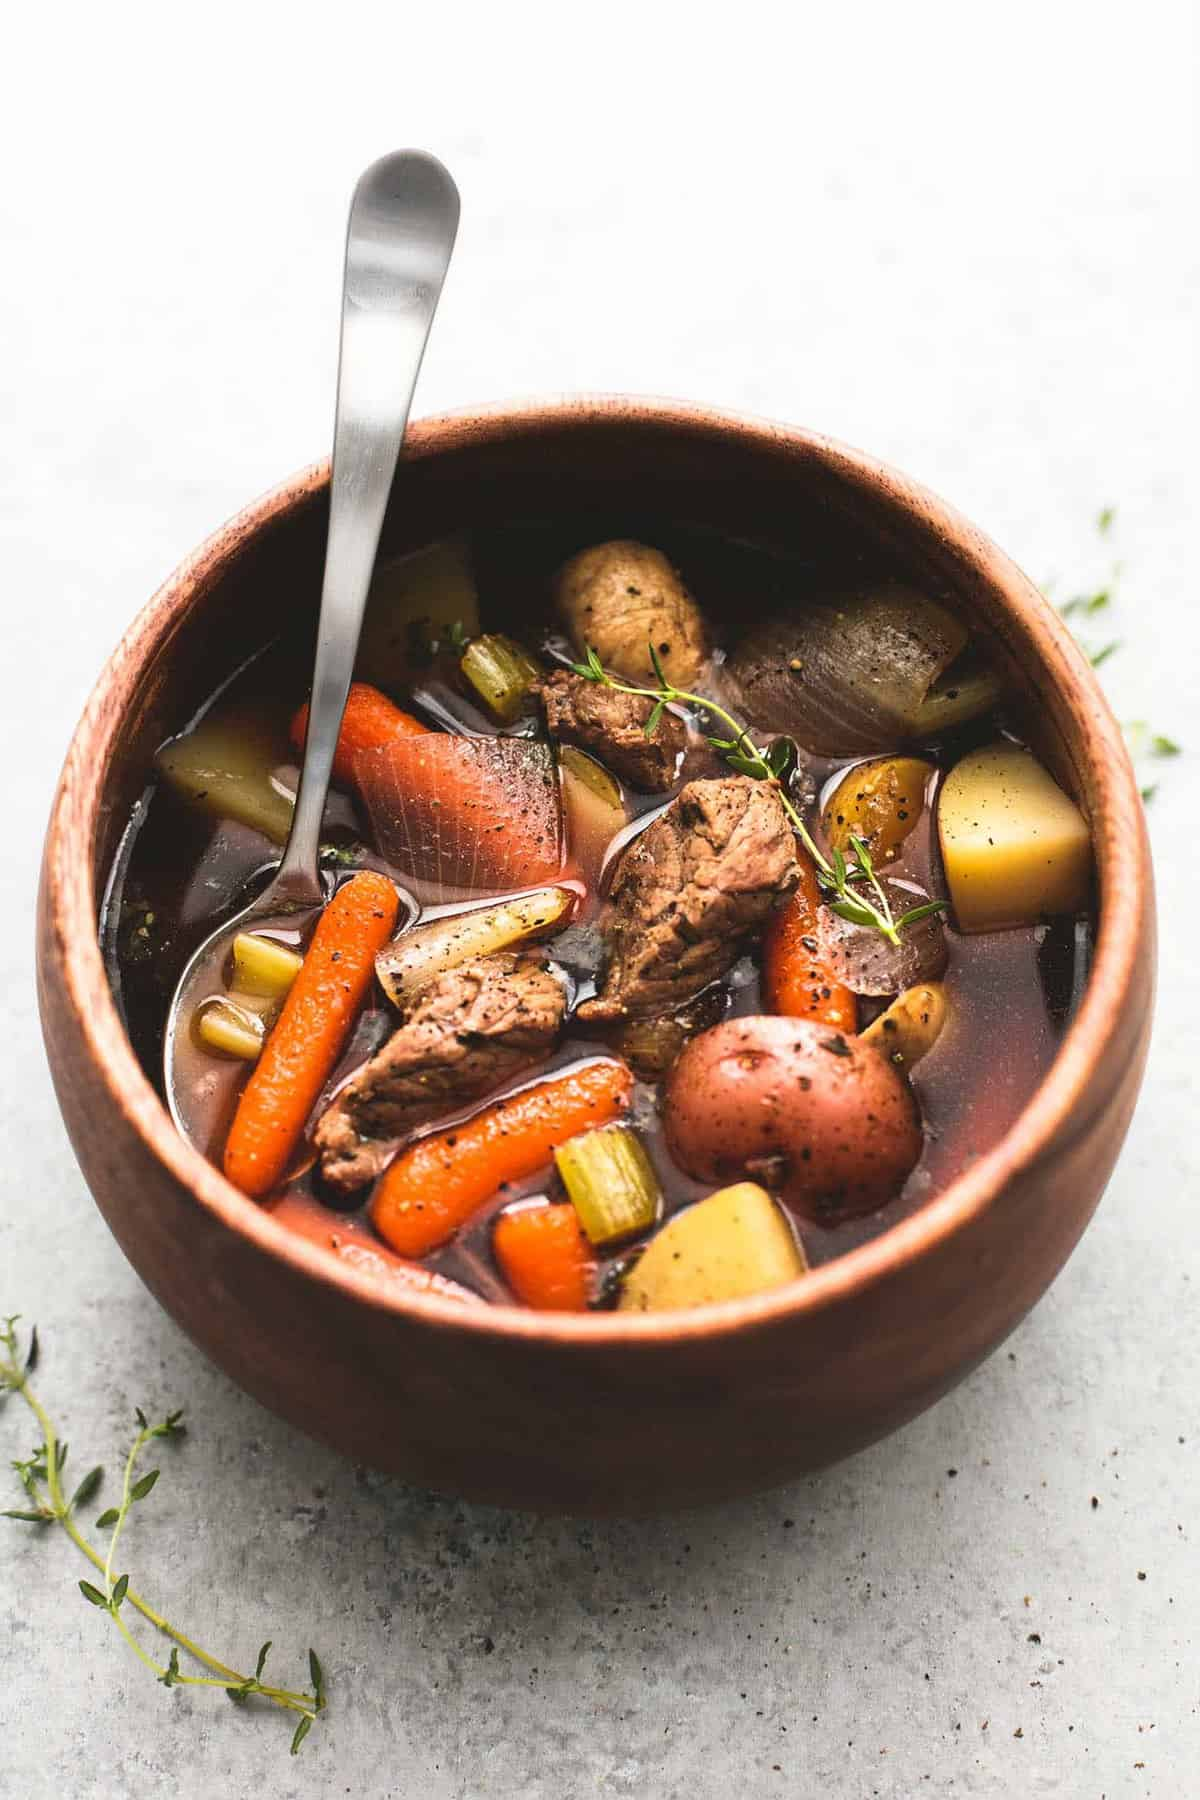 Hearty and flavorful slow cooker beef and potato stew is chock-full of juicy, tender beef and savory vegetables. Let your crockpot do the work and enjoy this tasty dinner with just 10 minutes of prep! | lecremedelacrumb.com